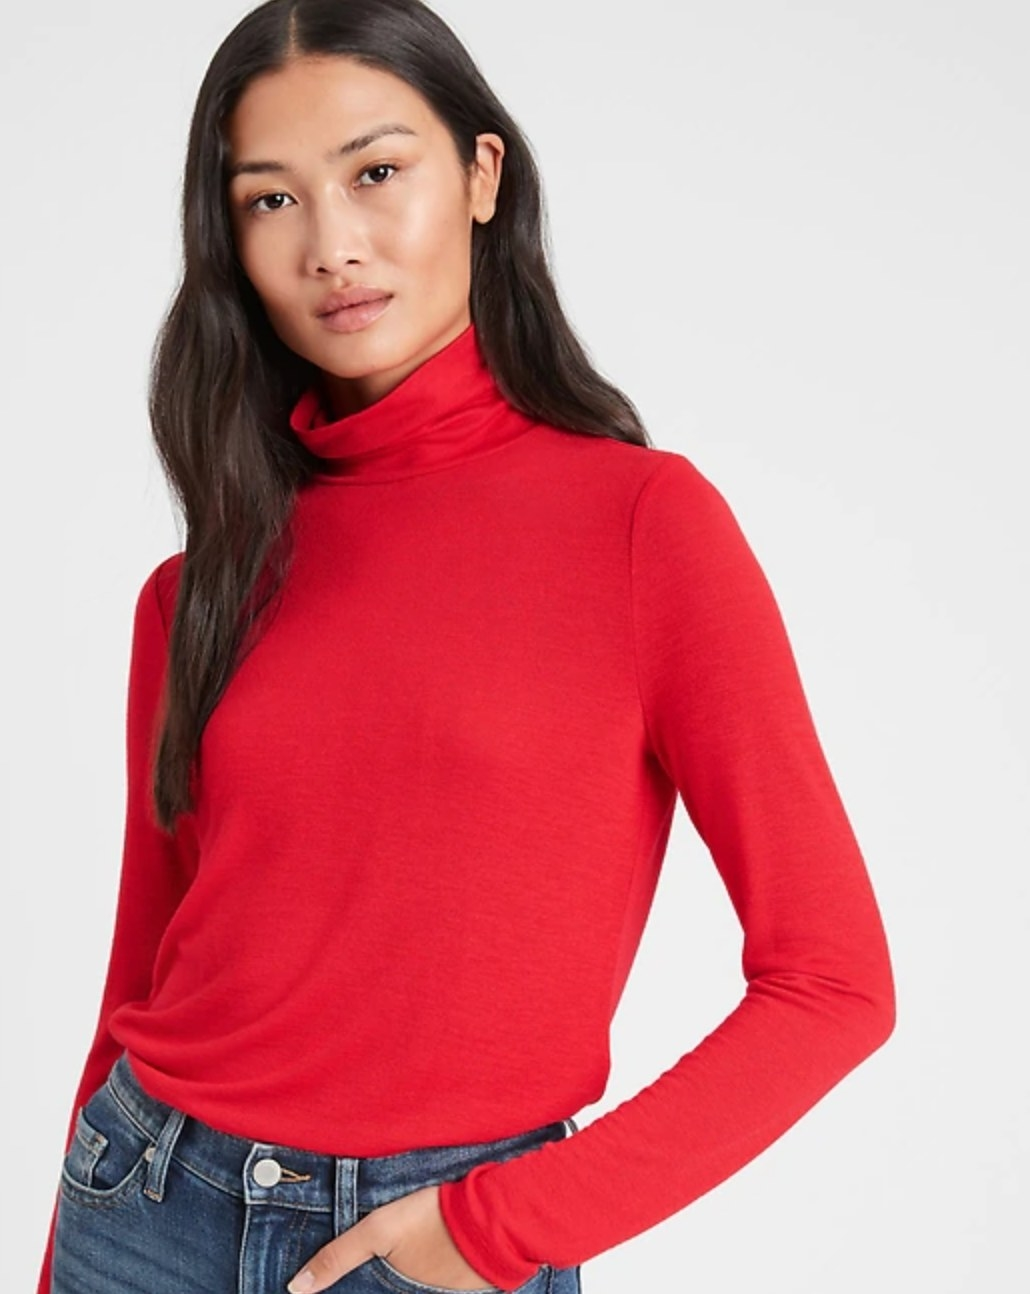 The turtleneck top in red